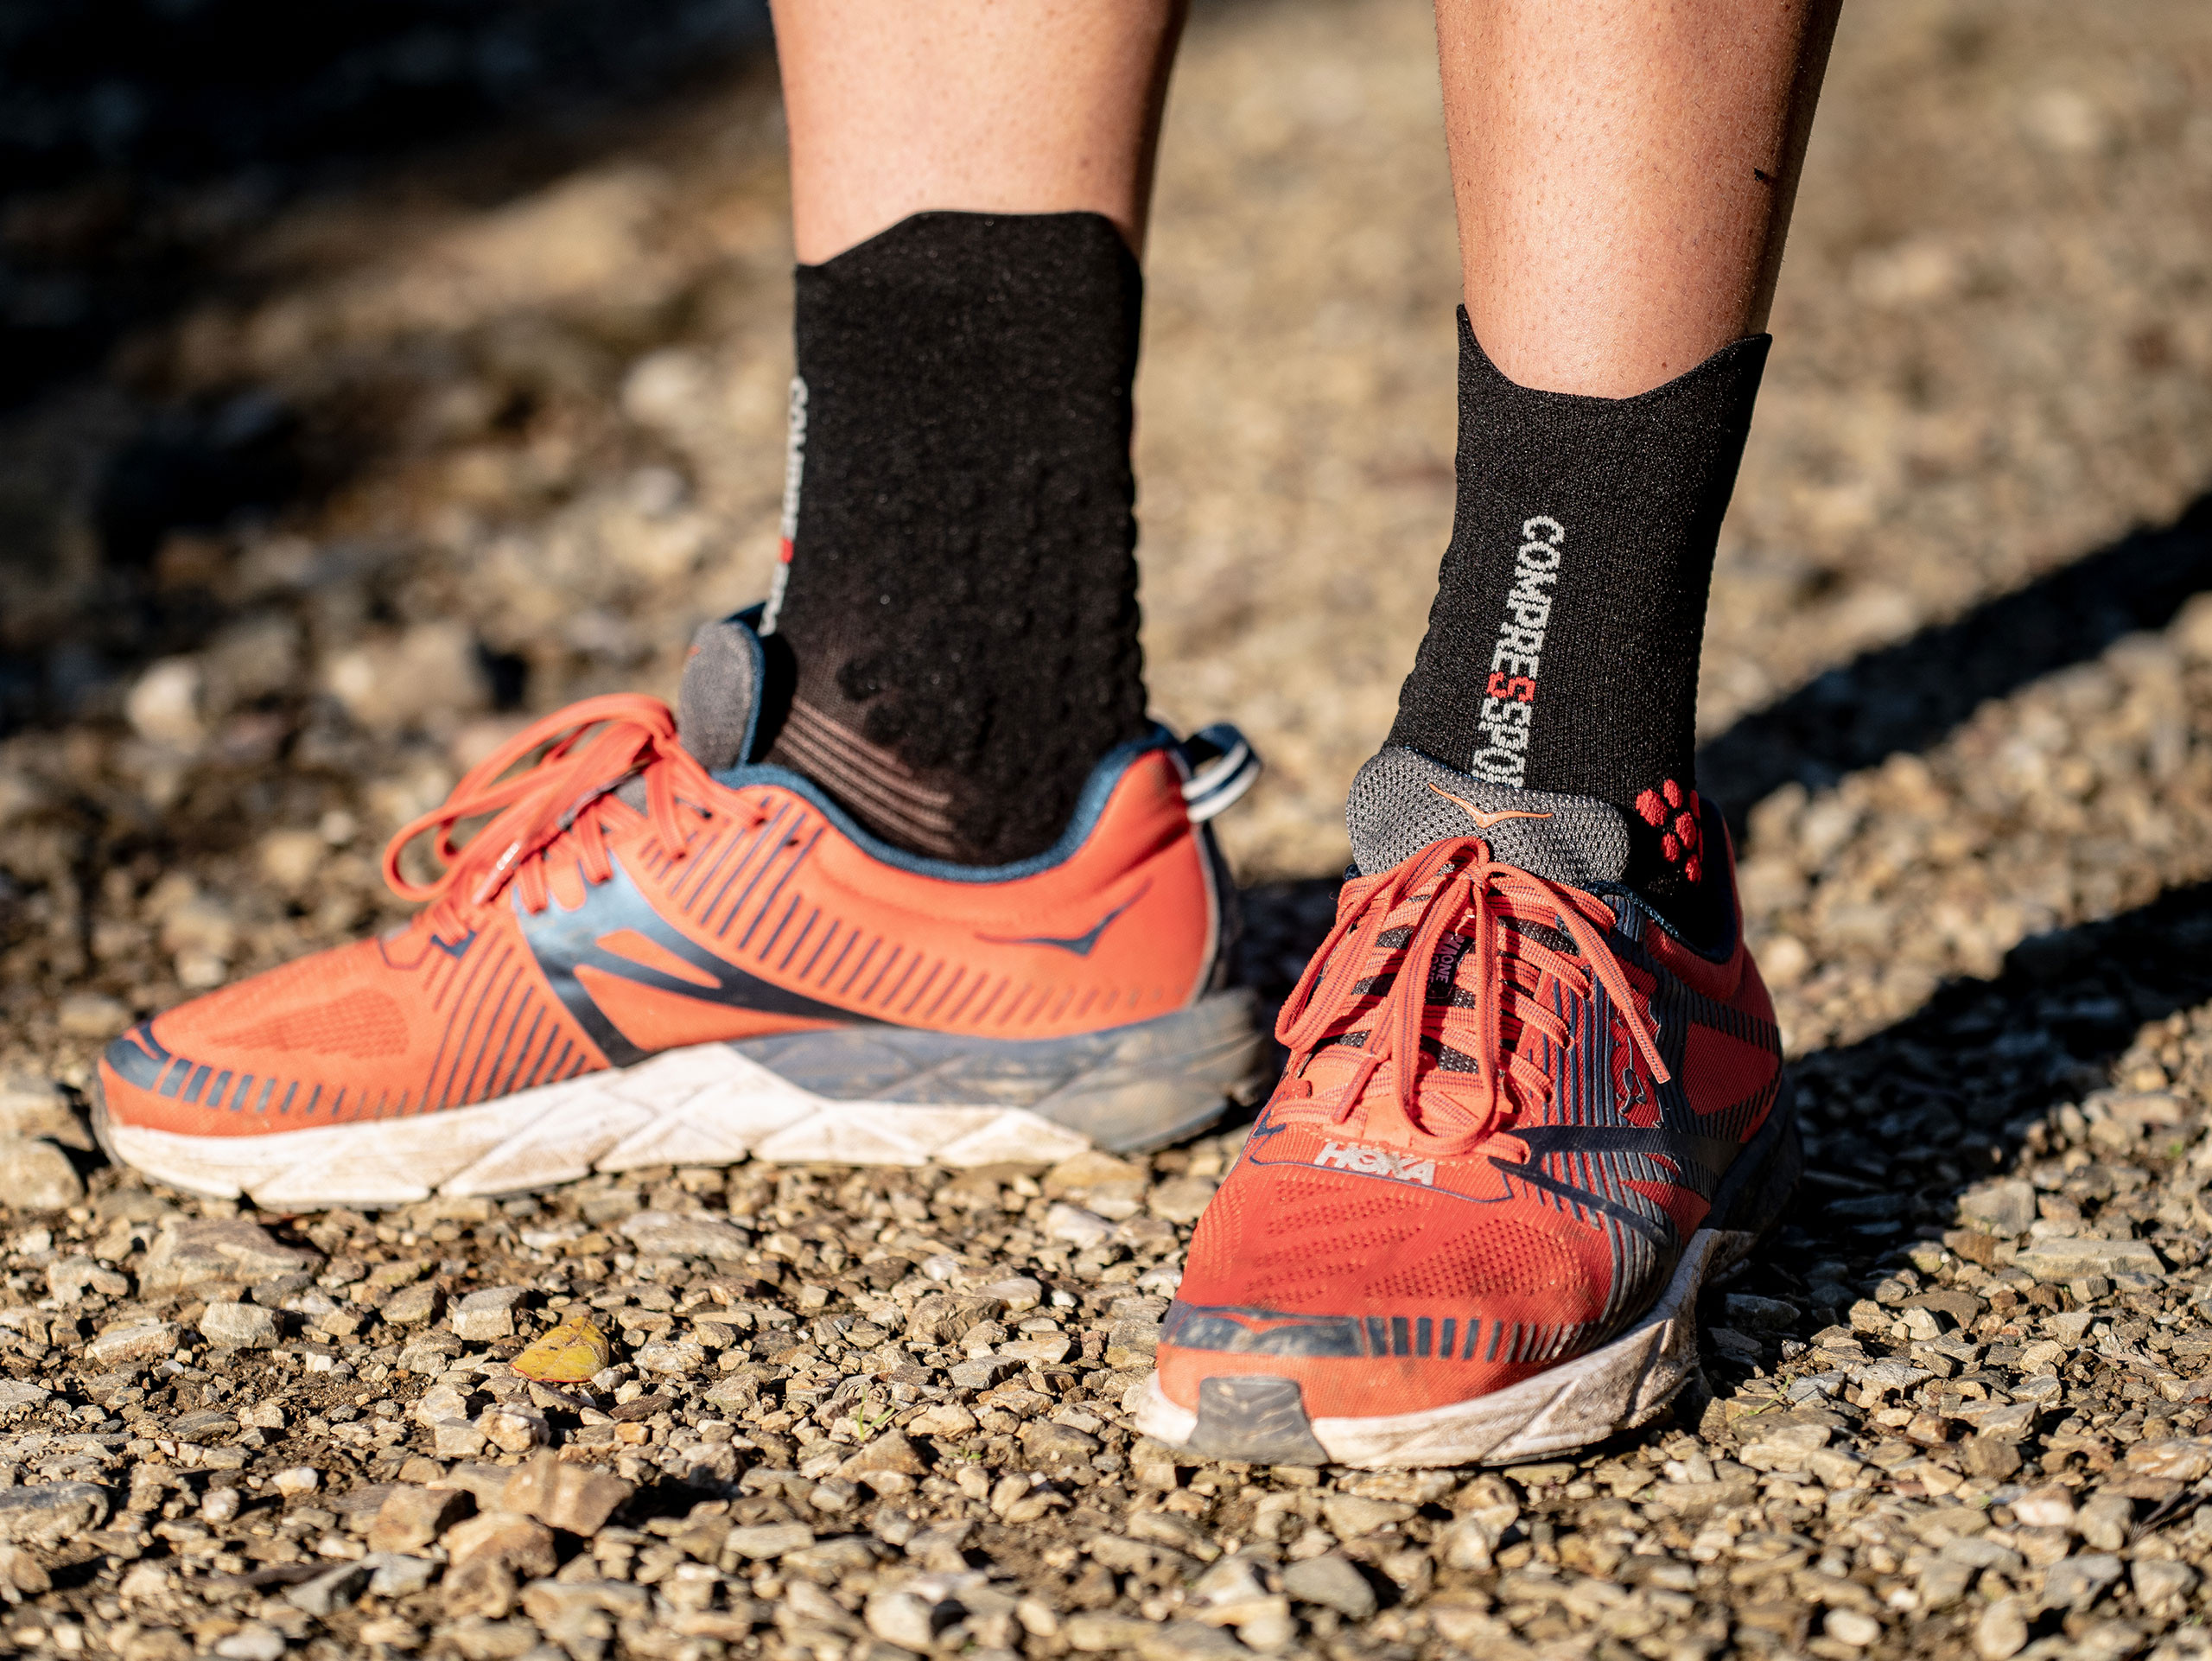 Pro racing socks v3.0 Trail black